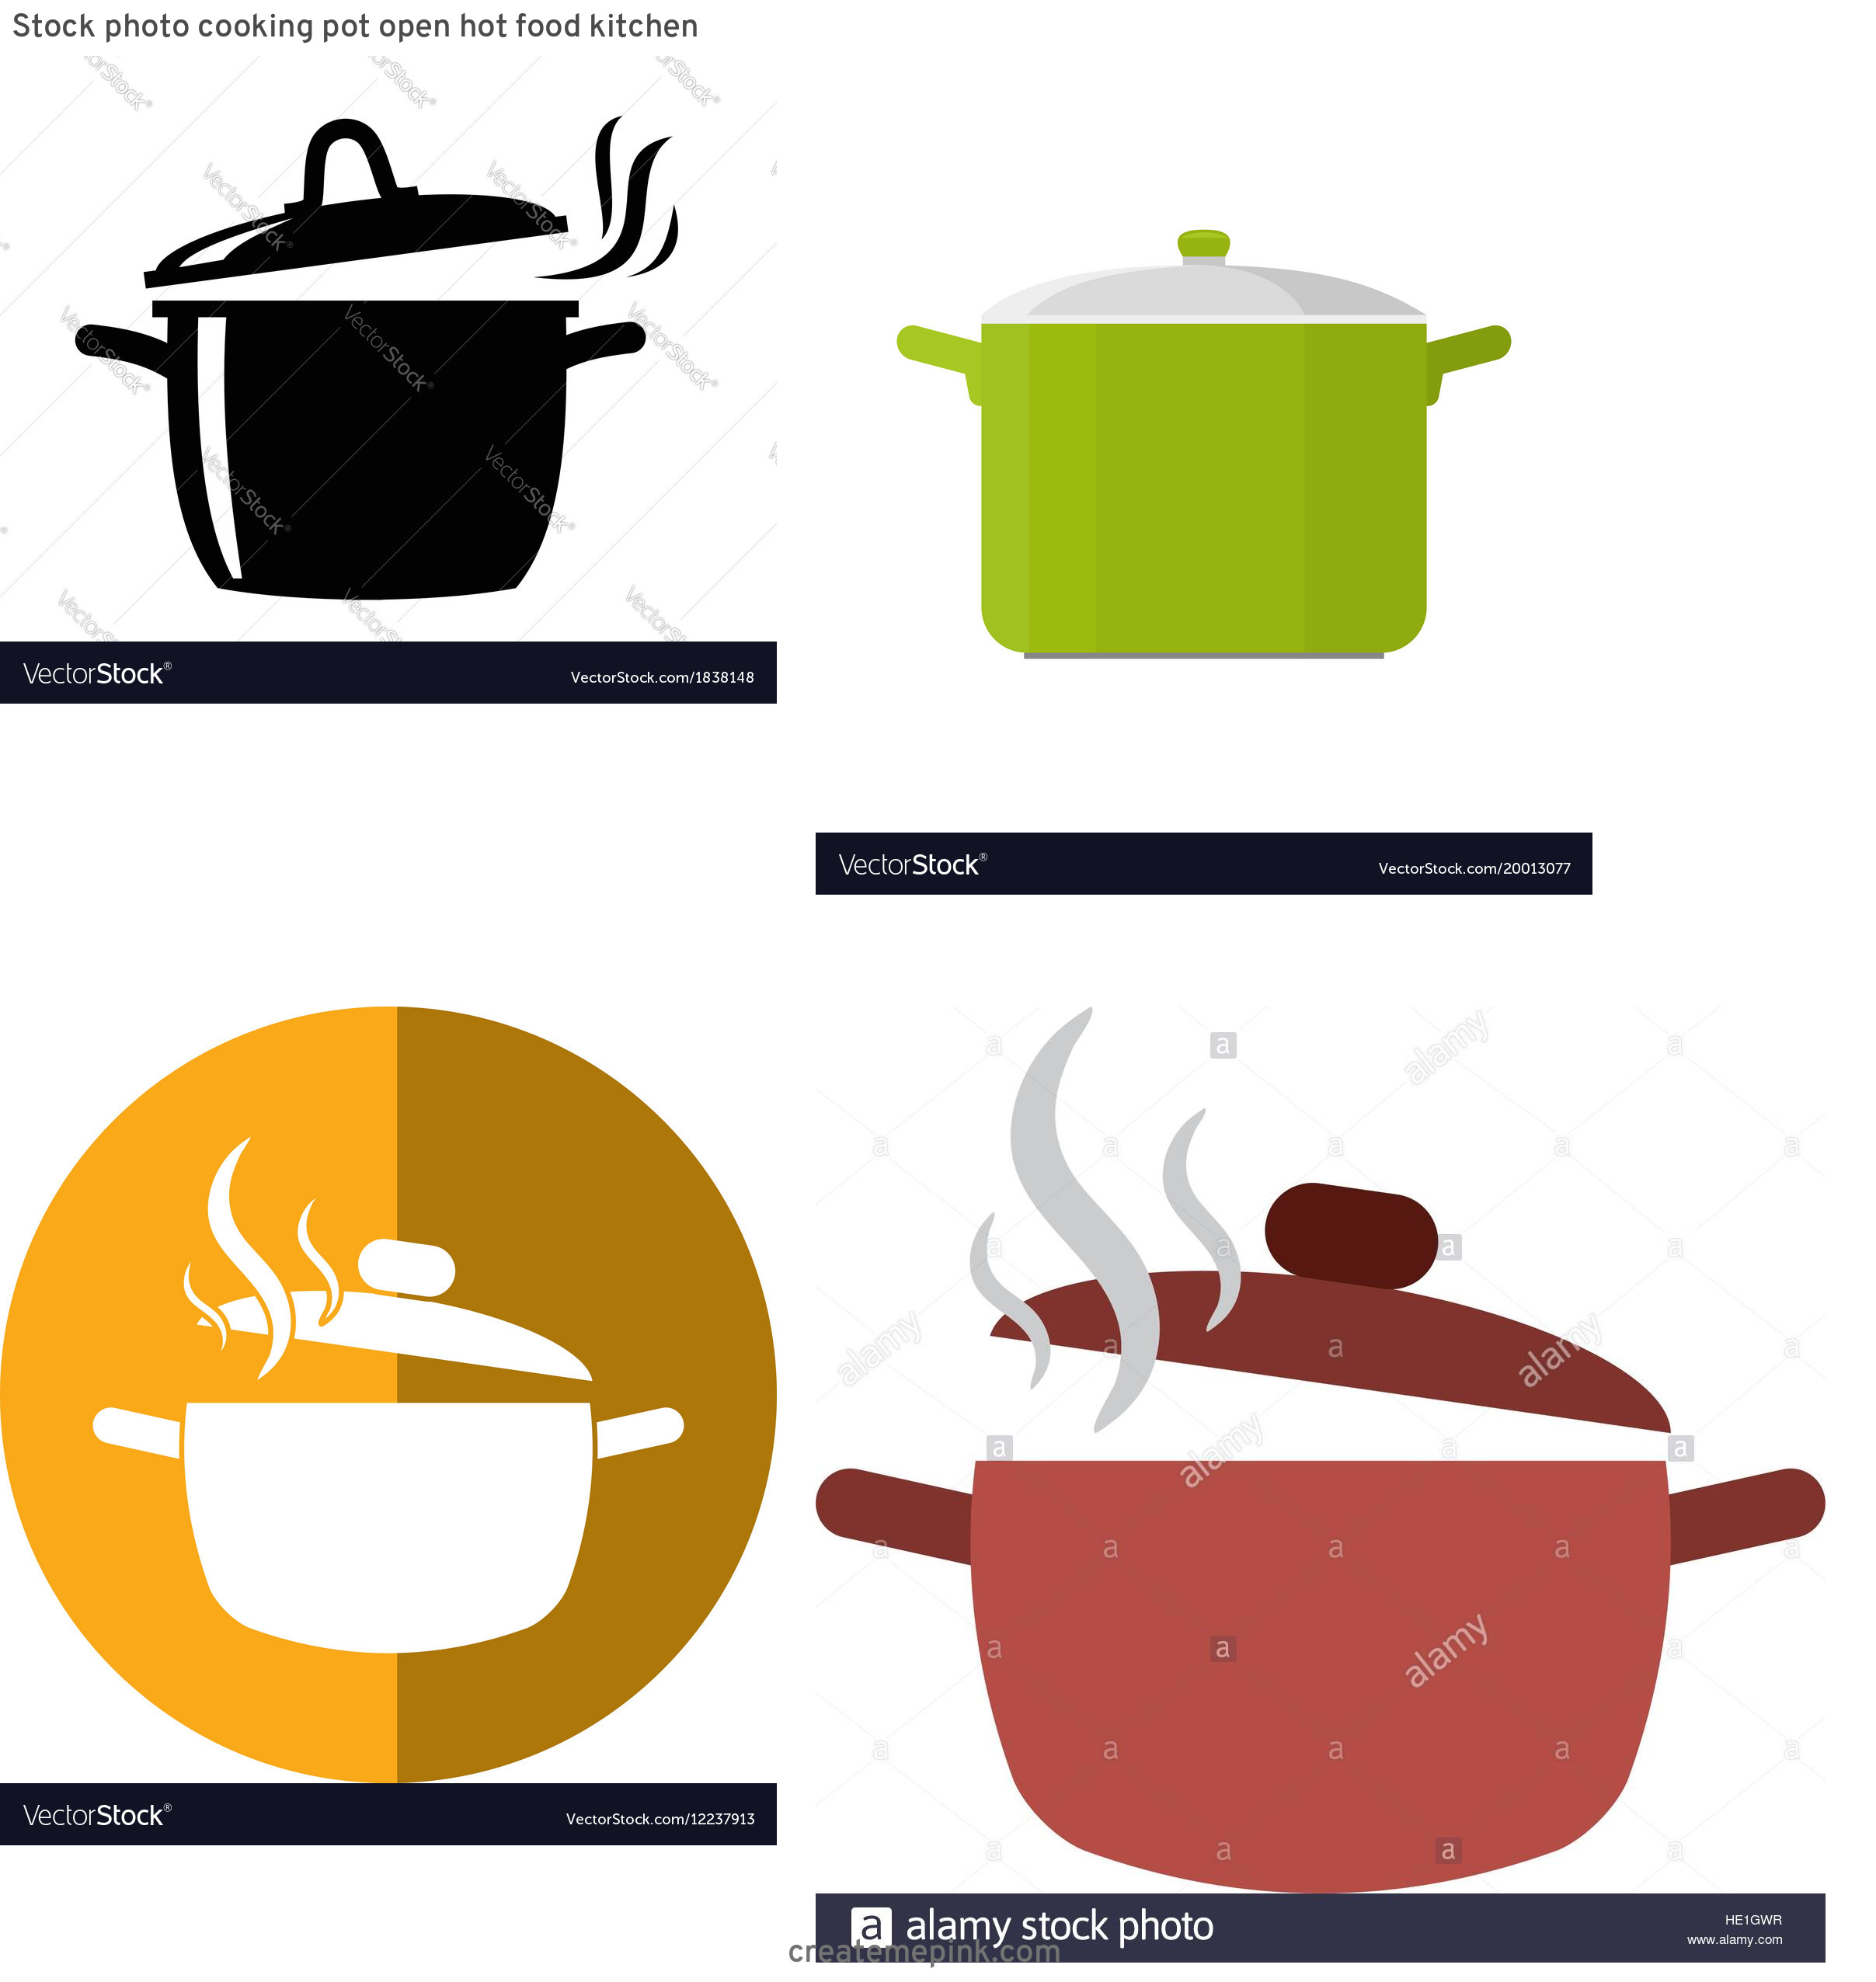 Cook Pot Vector: Stock Photo Cooking Pot Open Hot Food Kitchen